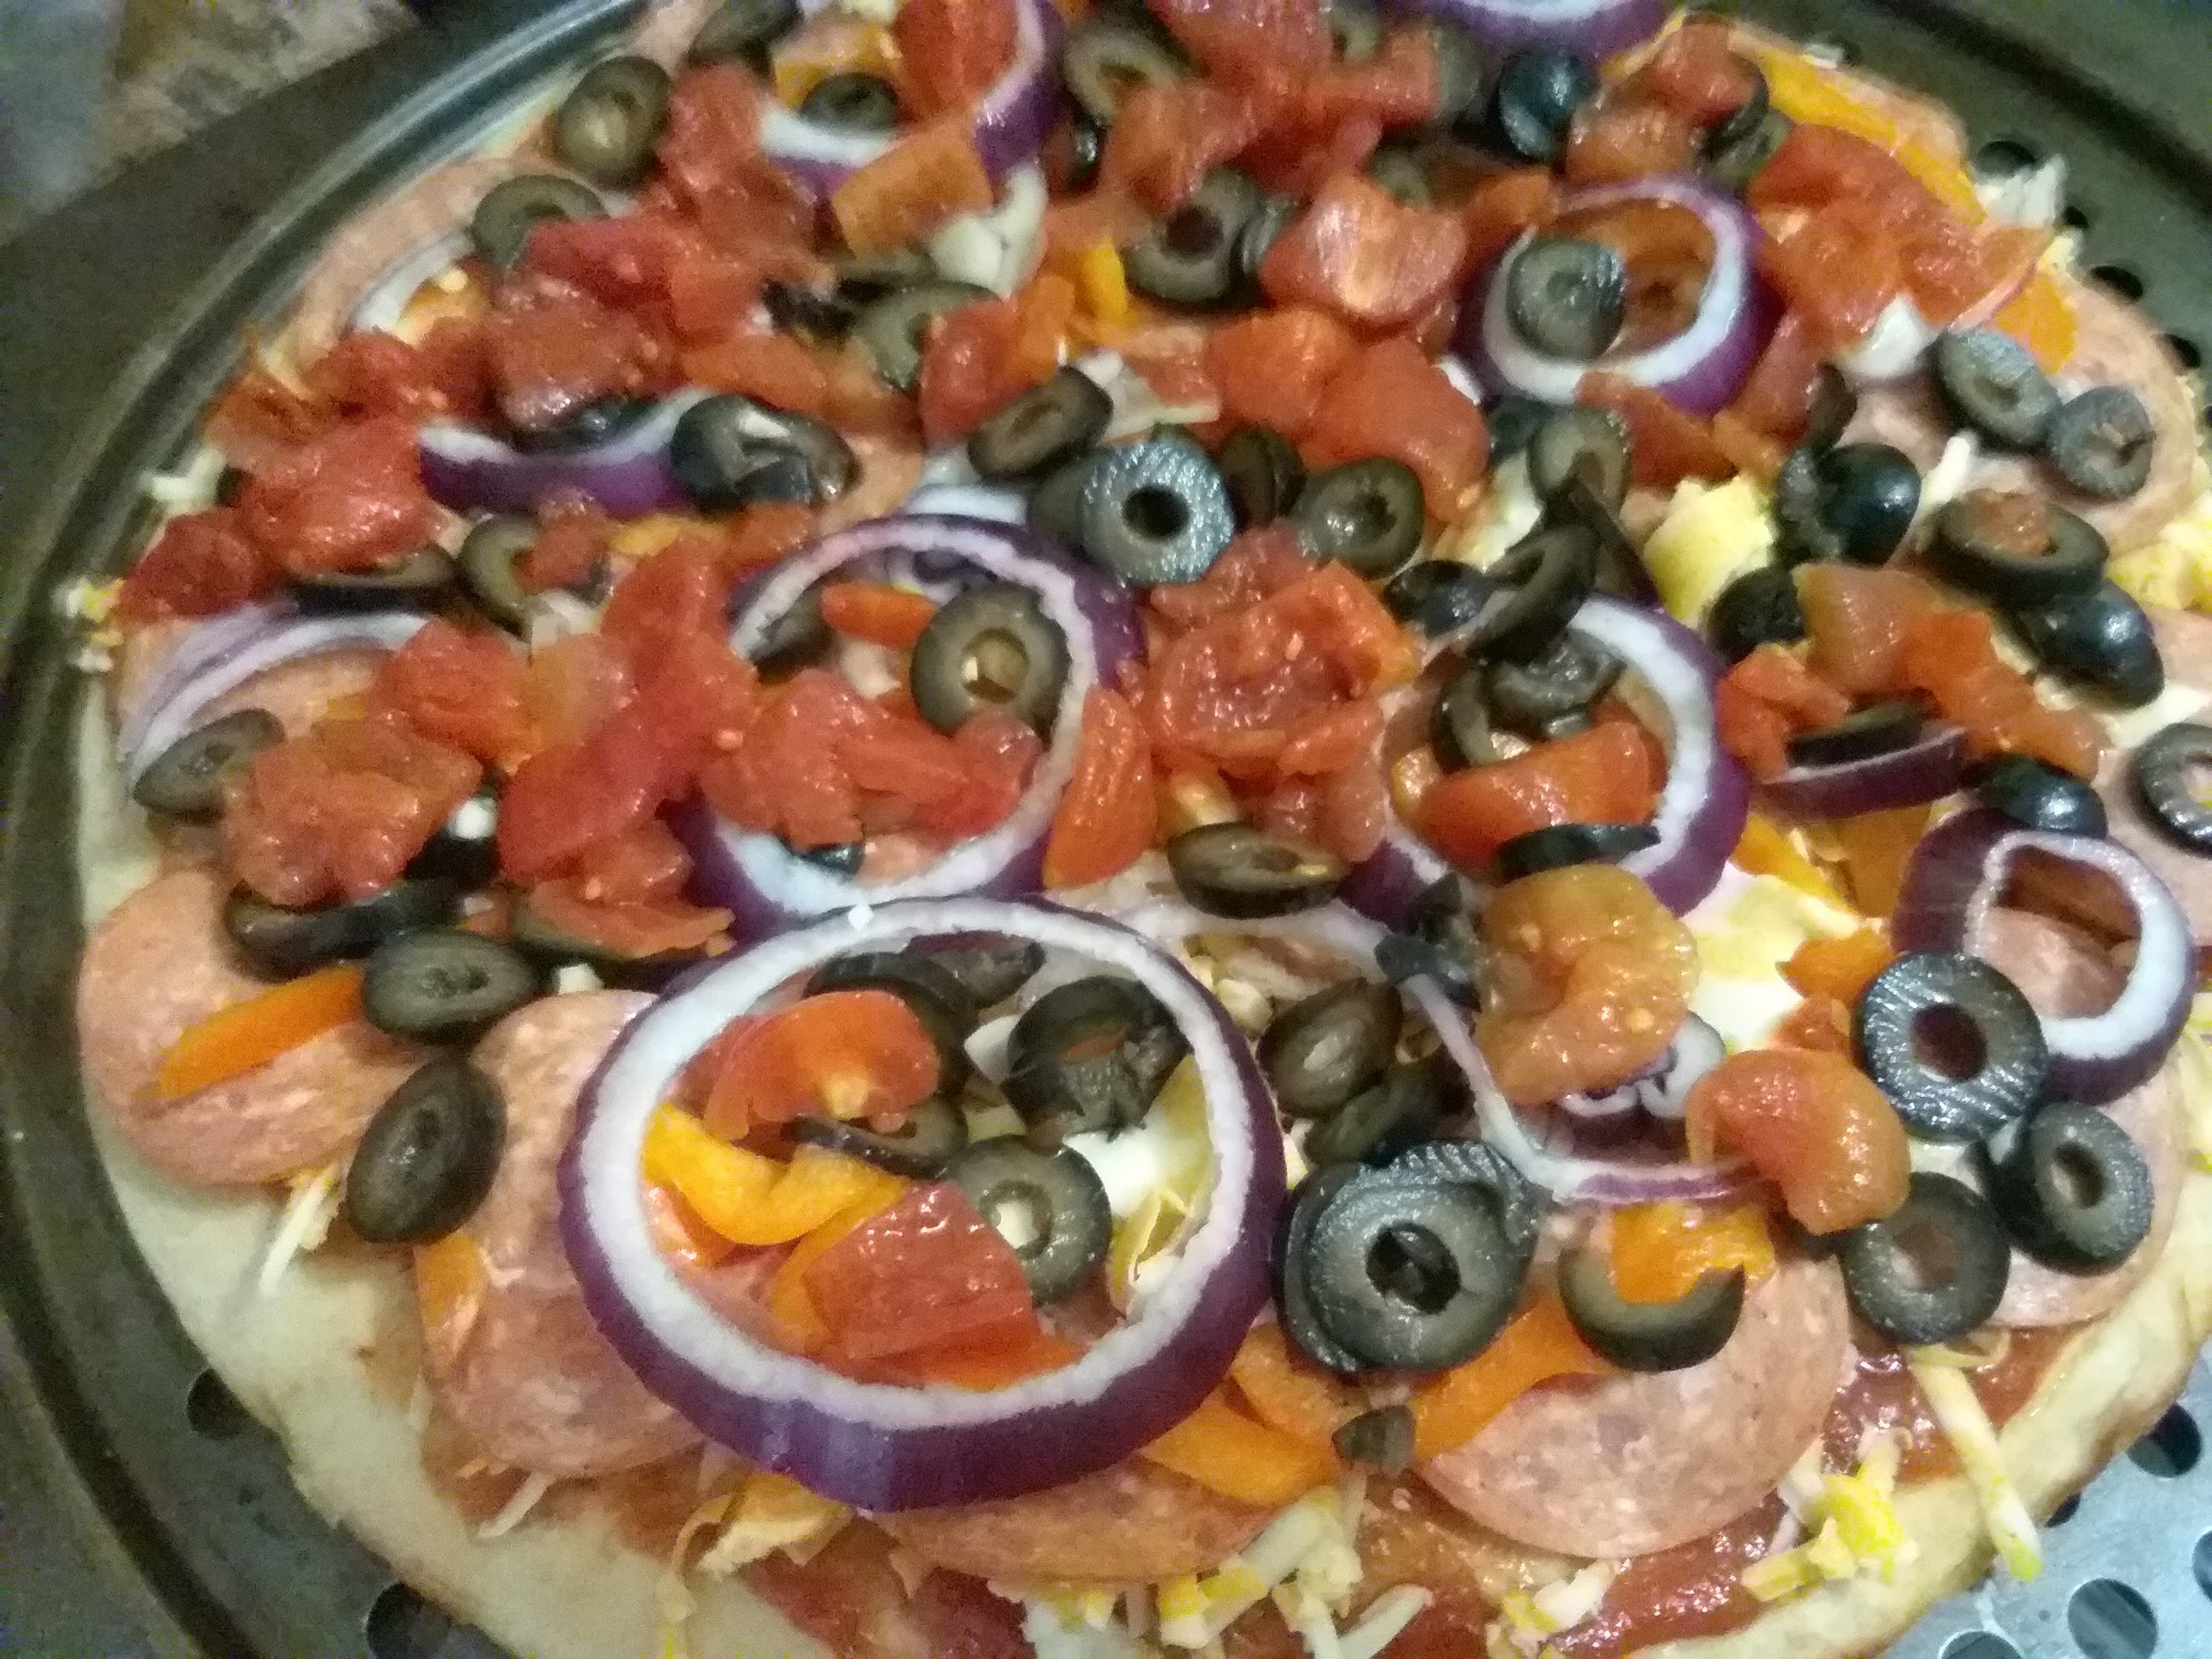 Pepperoni pizza with black olives